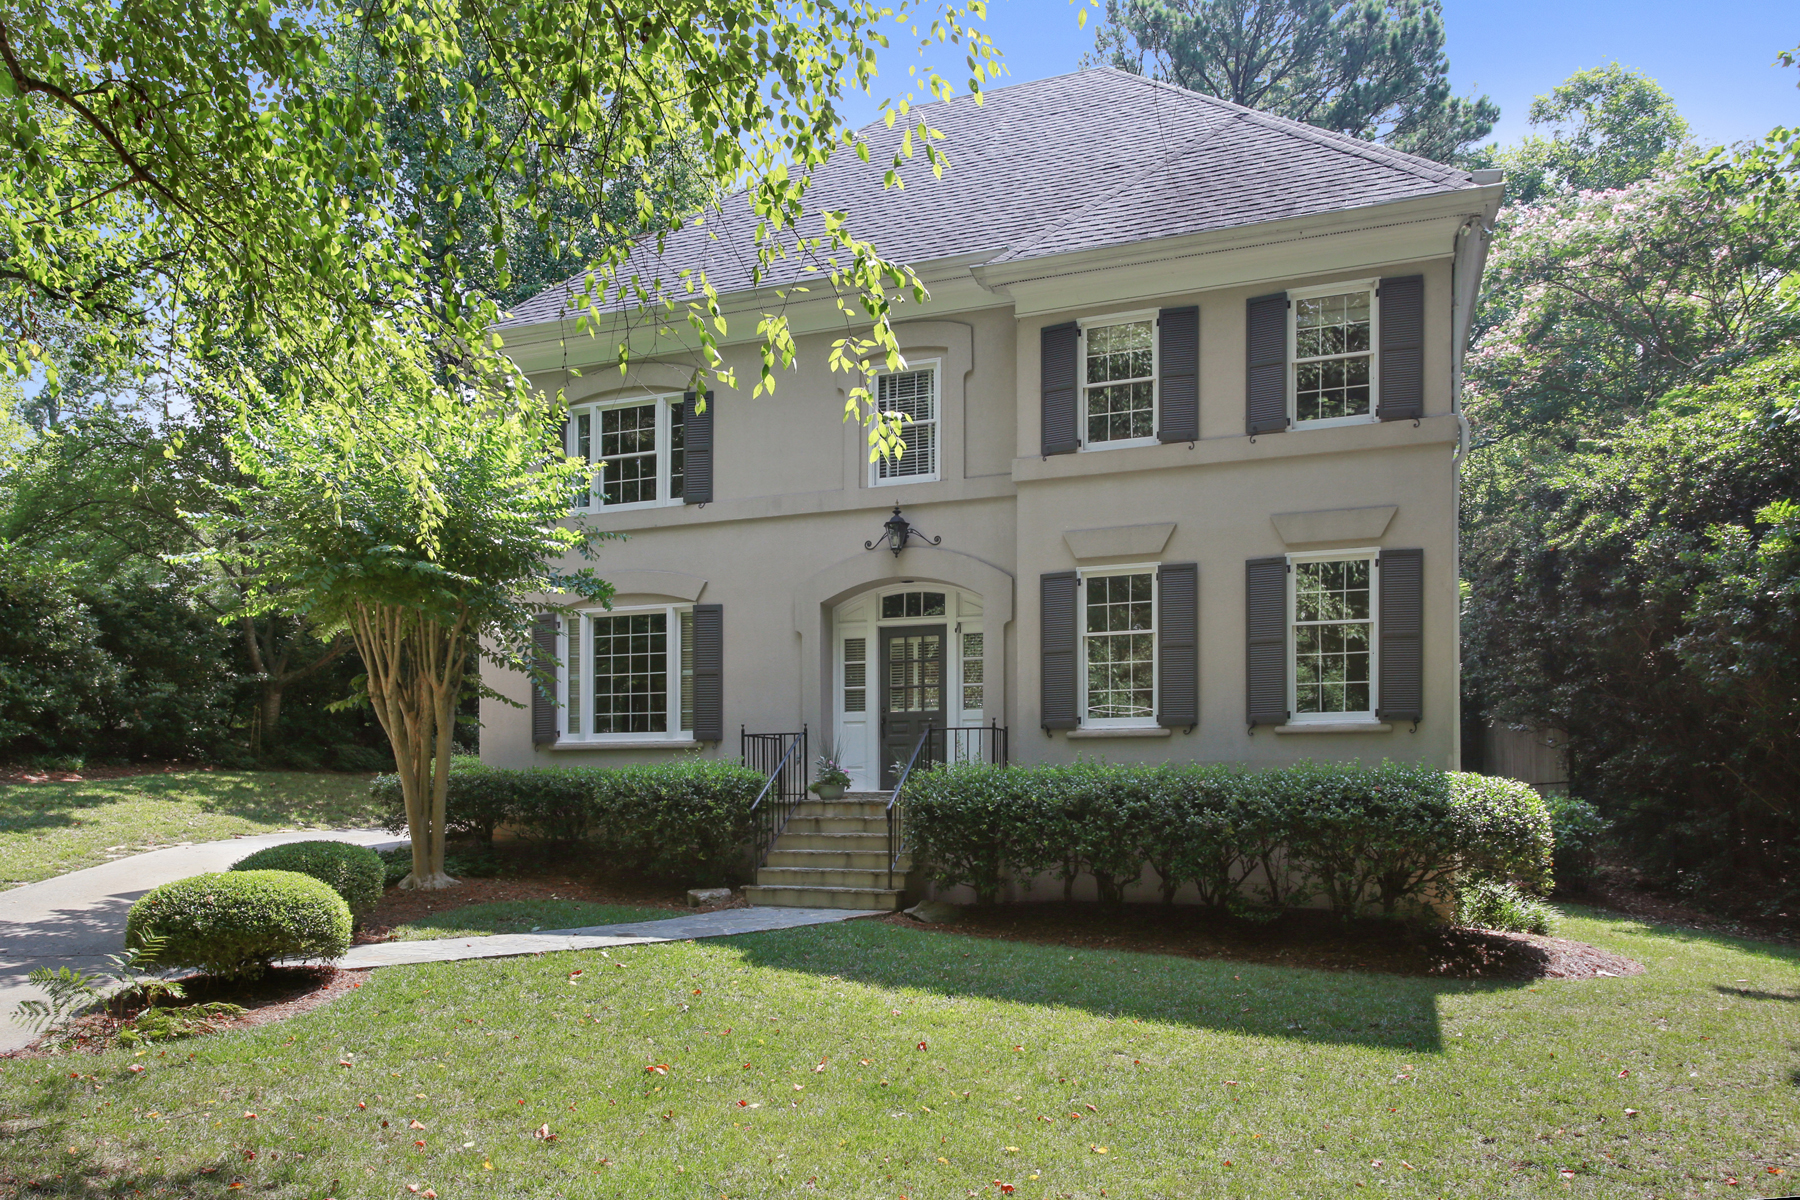 Single Family Home for Sale at Beautiful Home In Desirable Hanover West 2405 Hyde Manor Drive NW Hanover West, Atlanta, Georgia, 30327 United States